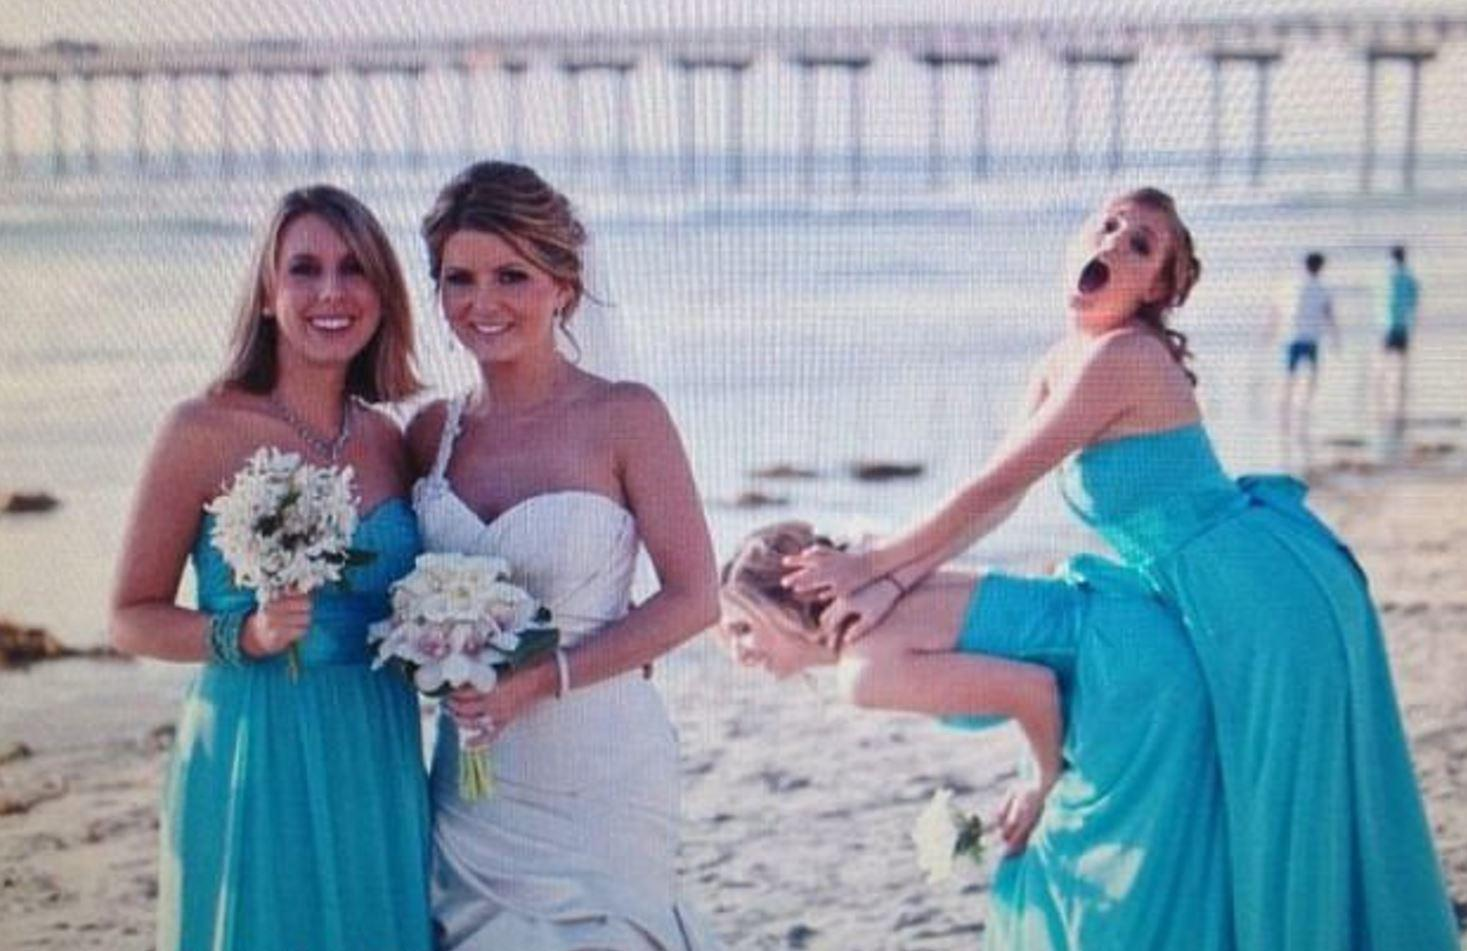 Sex with the bridesmaid